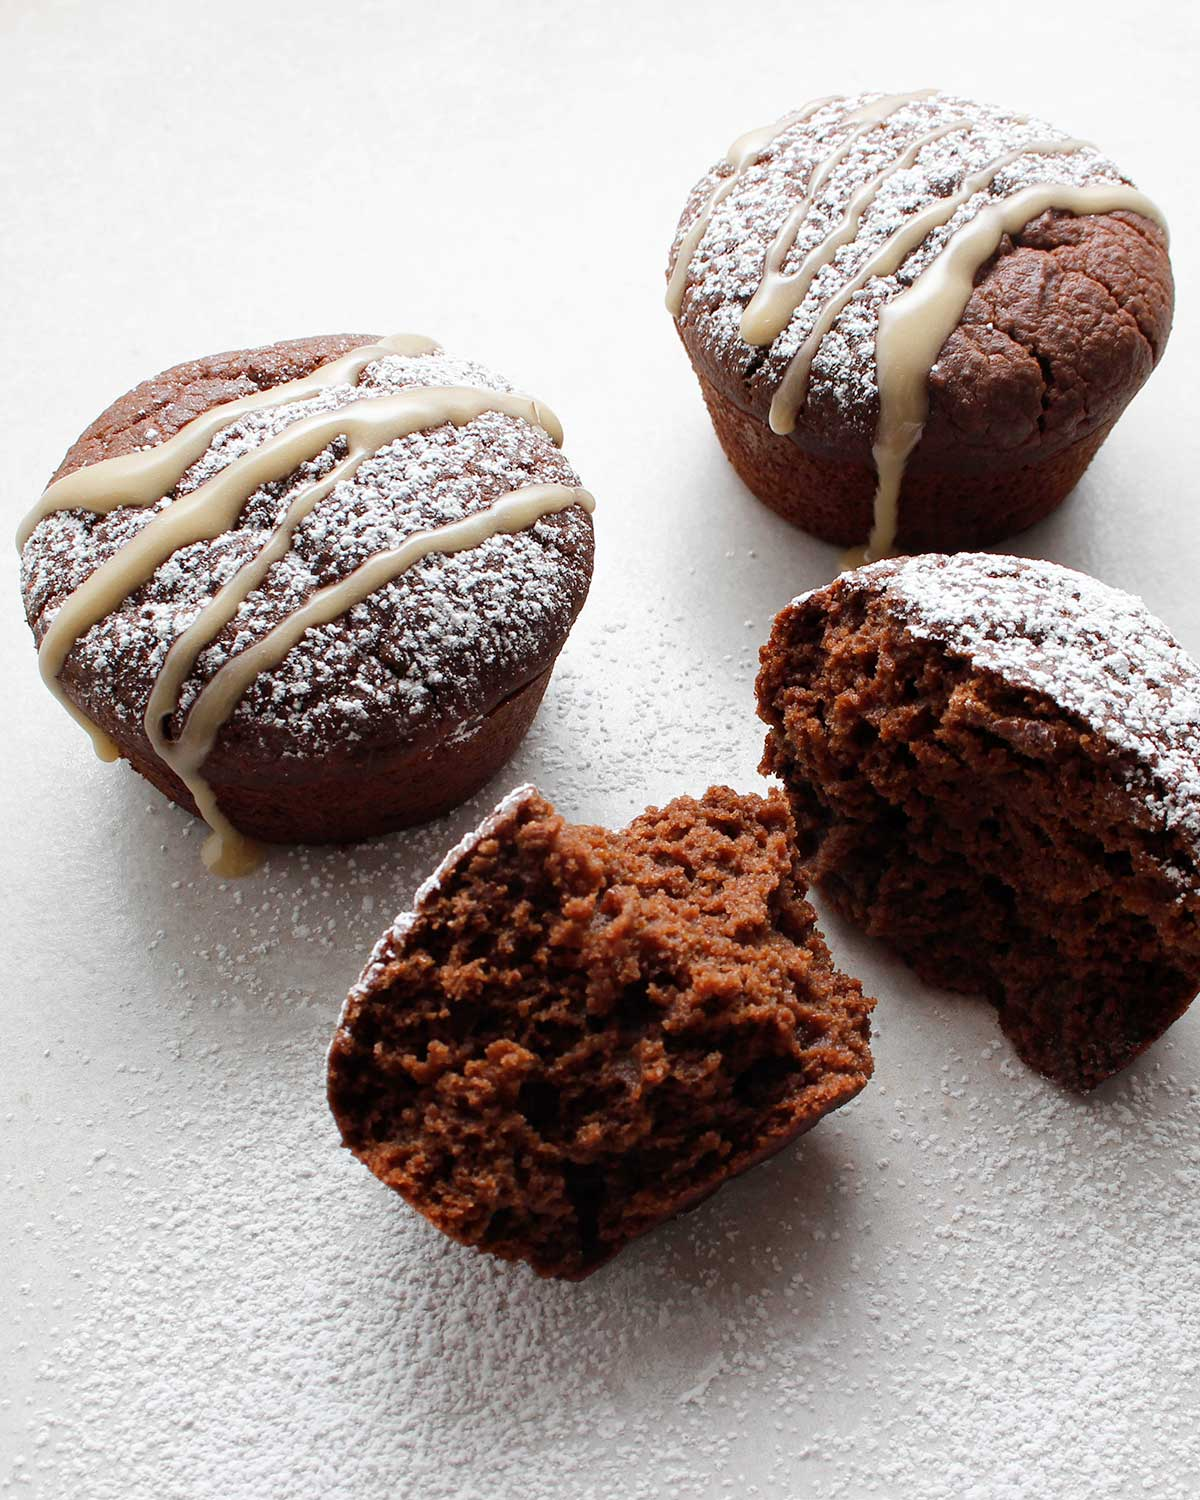 Simply decorated gluten-free chocolate sourdough cupcakes.